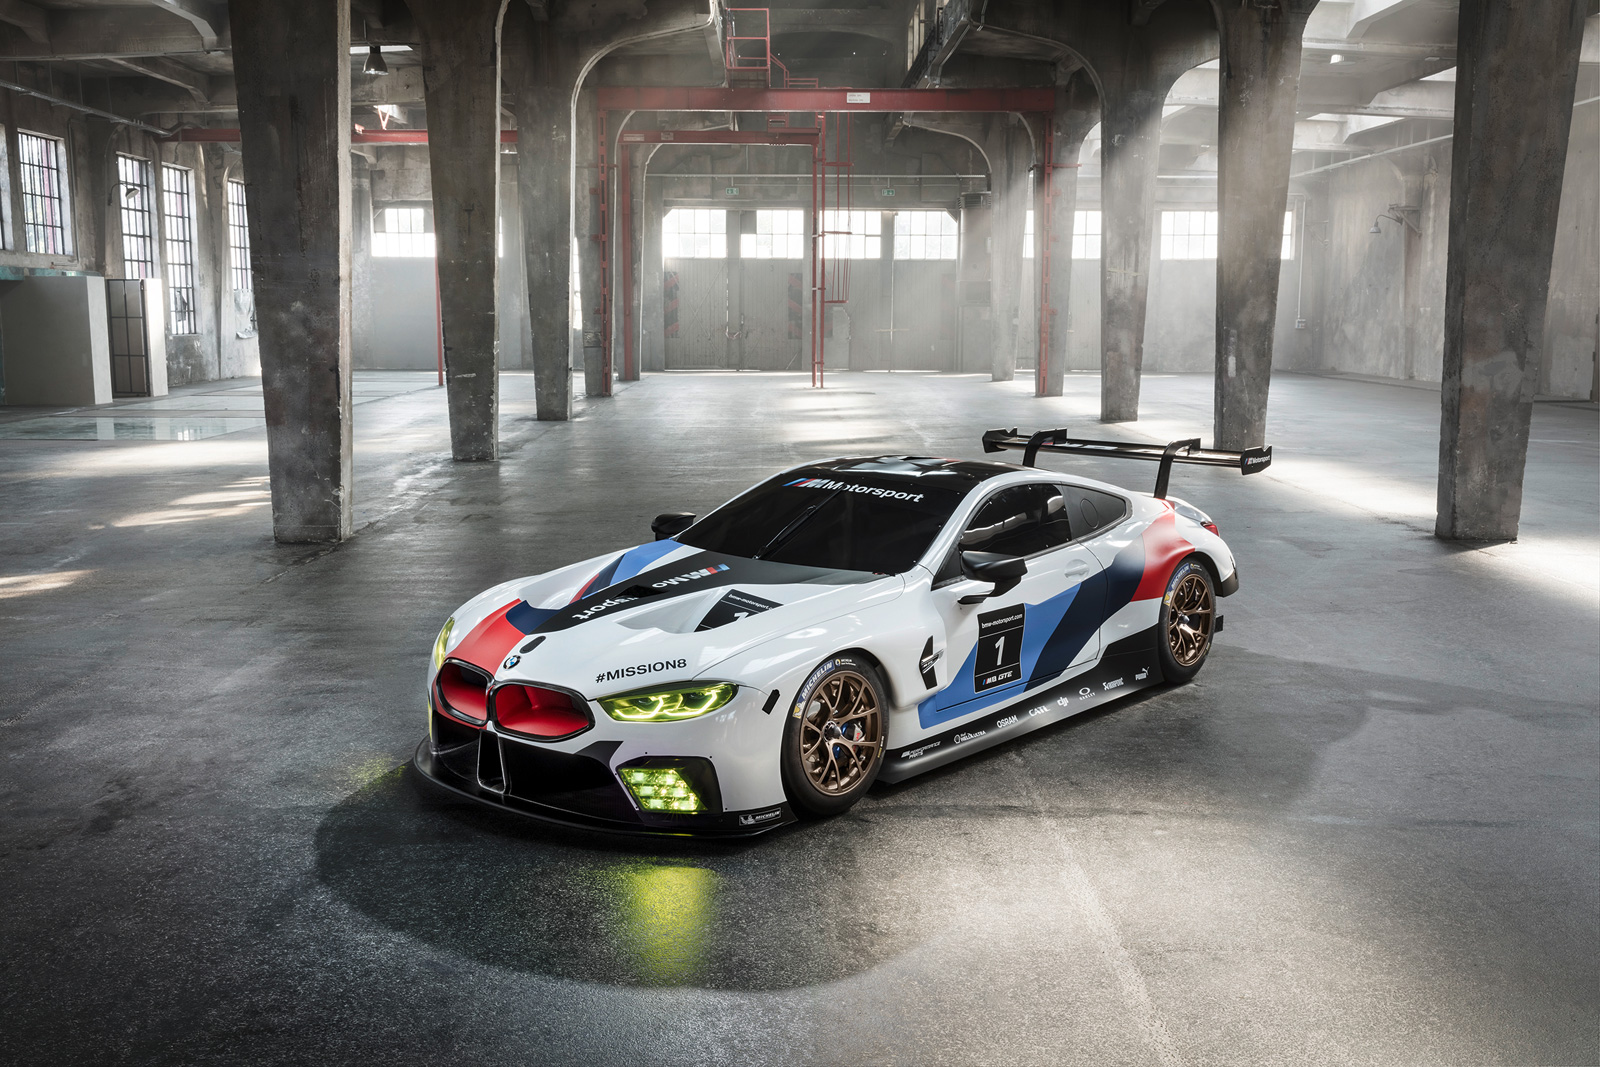 Bmw 39 S New Race Car Previews Upcoming 8 Series Coupe